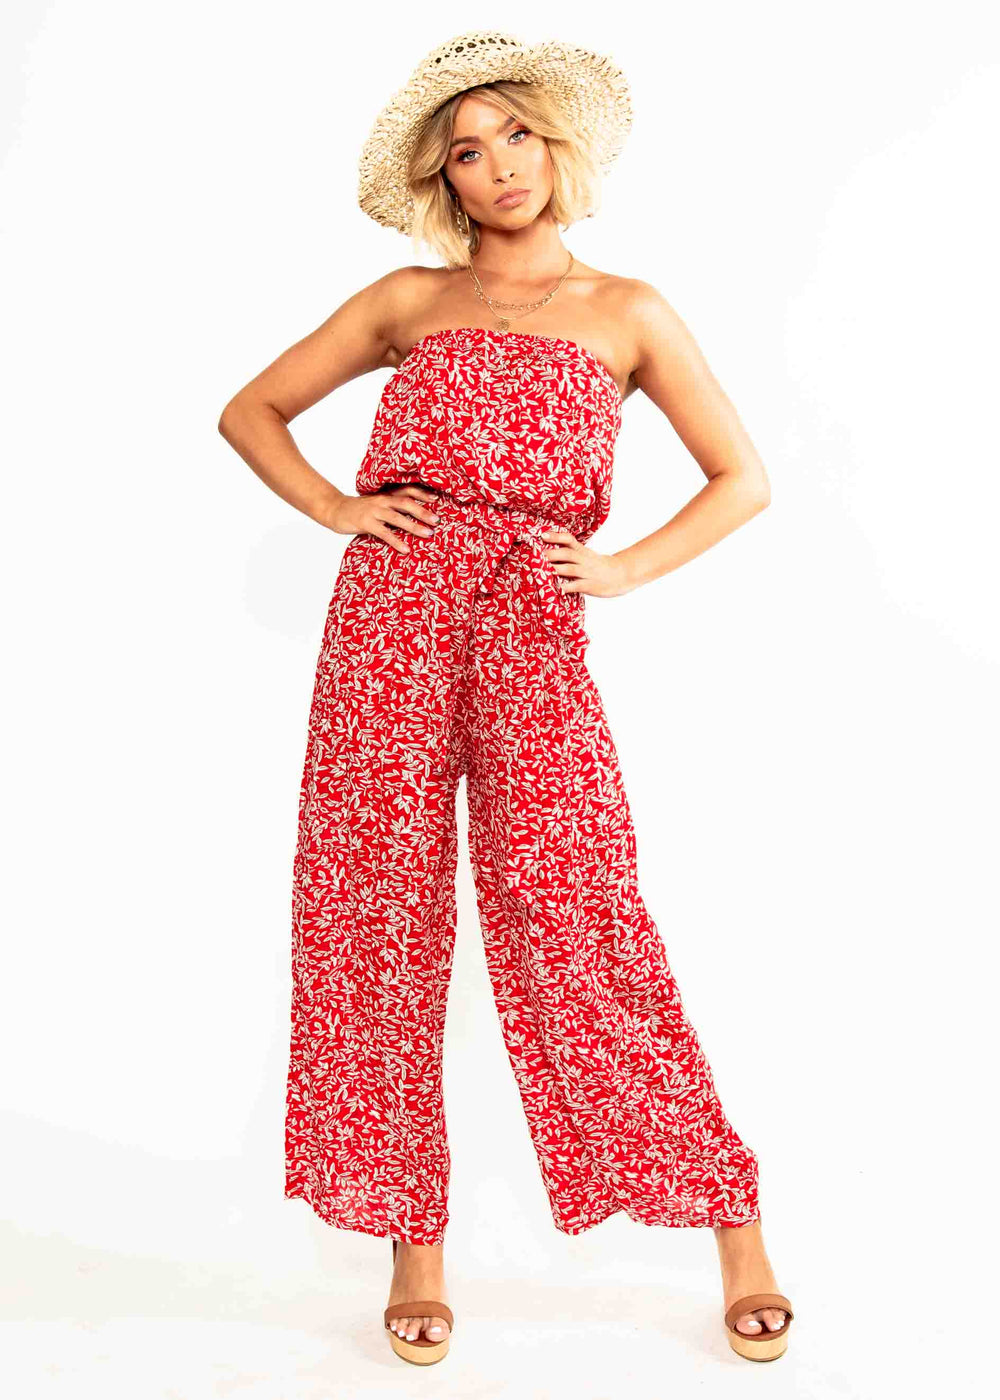 Dream Big Strapless Pantsuit - Red Floral